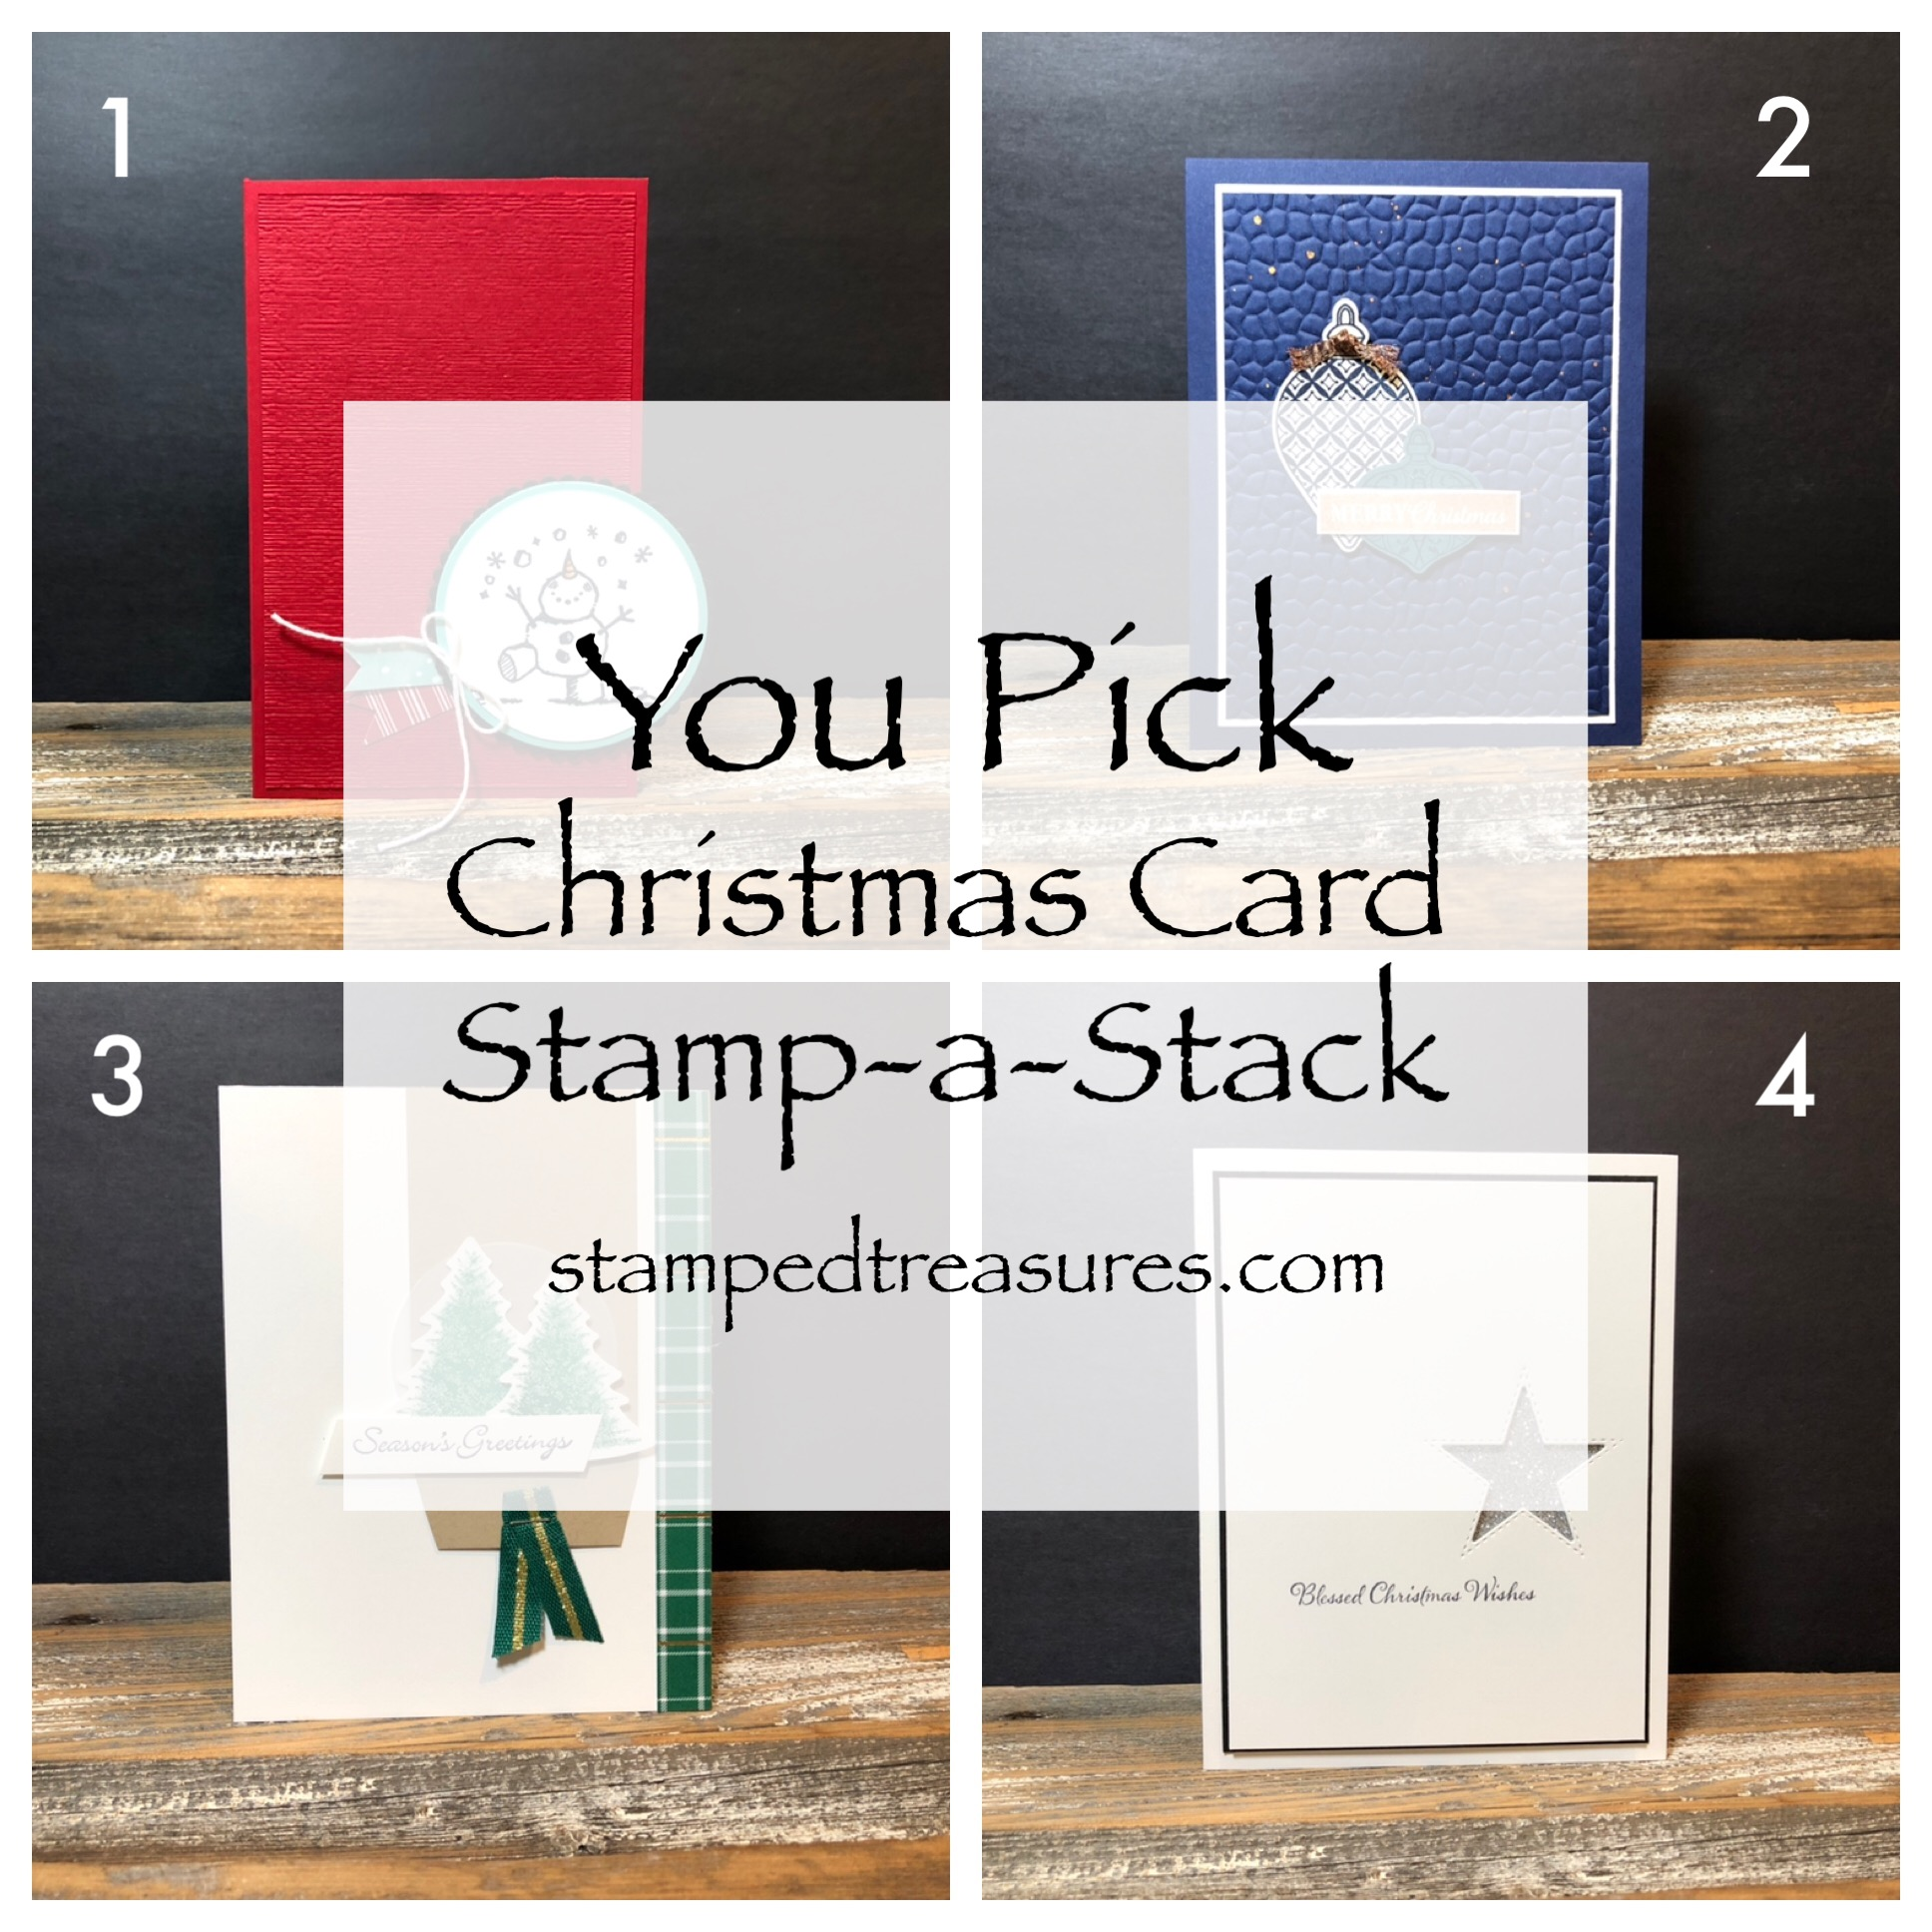 You Pick Christmas Stamp-a-stack